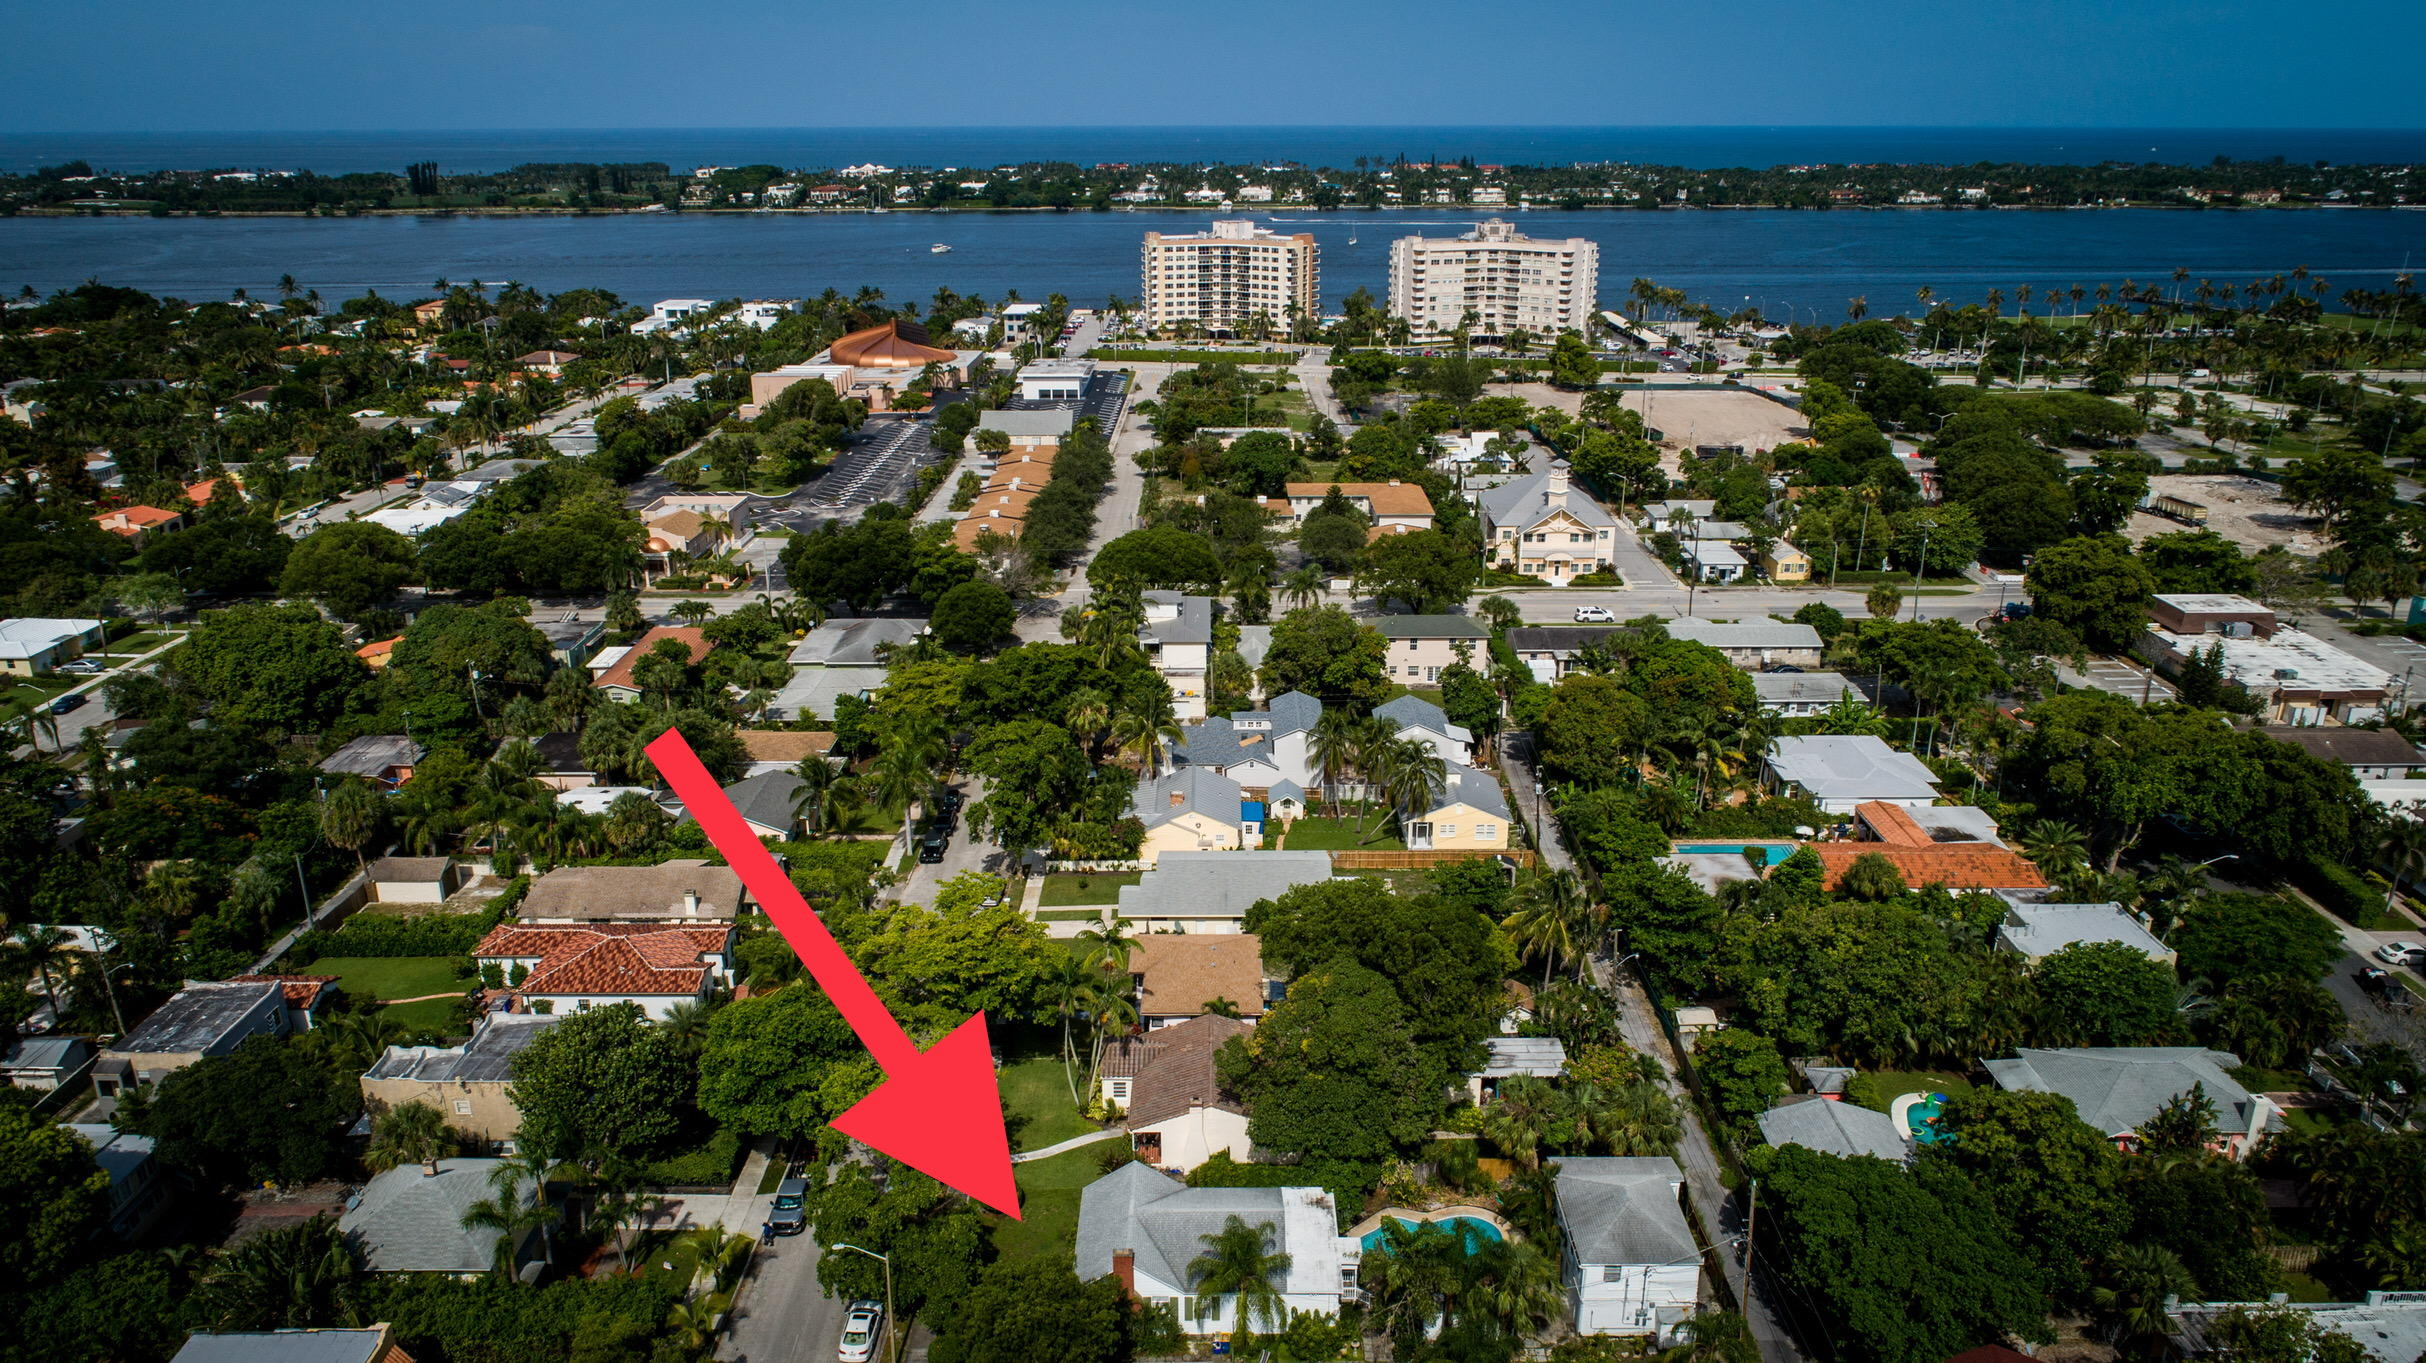 430 27th Street, West Palm Beach, Florida 33407, 4 Bedrooms Bedrooms, ,3 BathroomsBathrooms,Single Family,For Sale,27th,RX-10446017